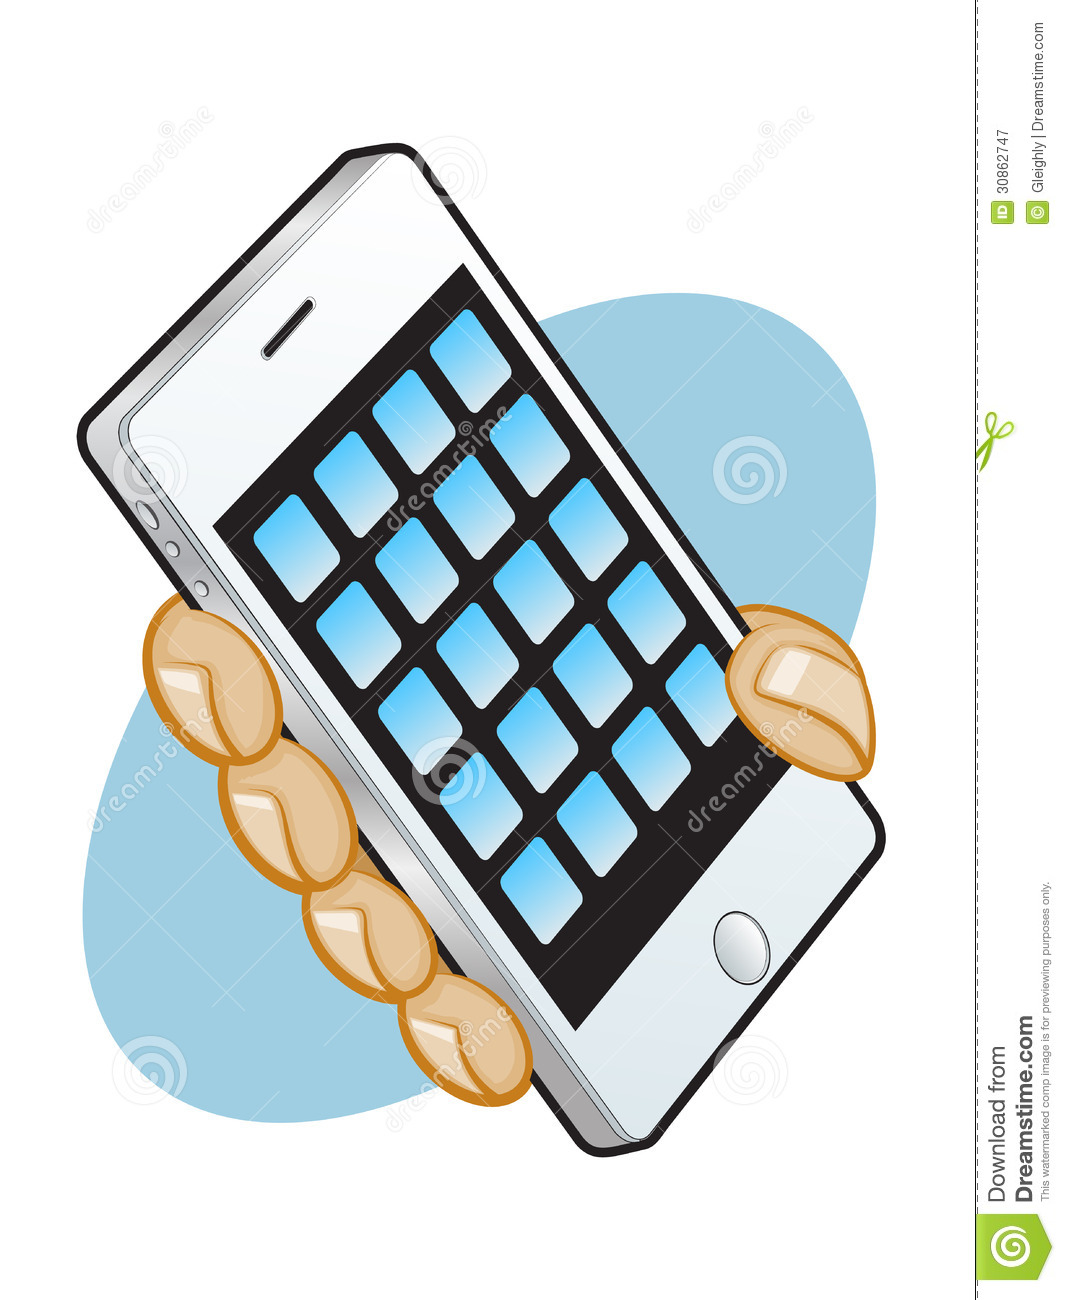 Smart Phone App Graphic Royalty Free Stock Photography ...